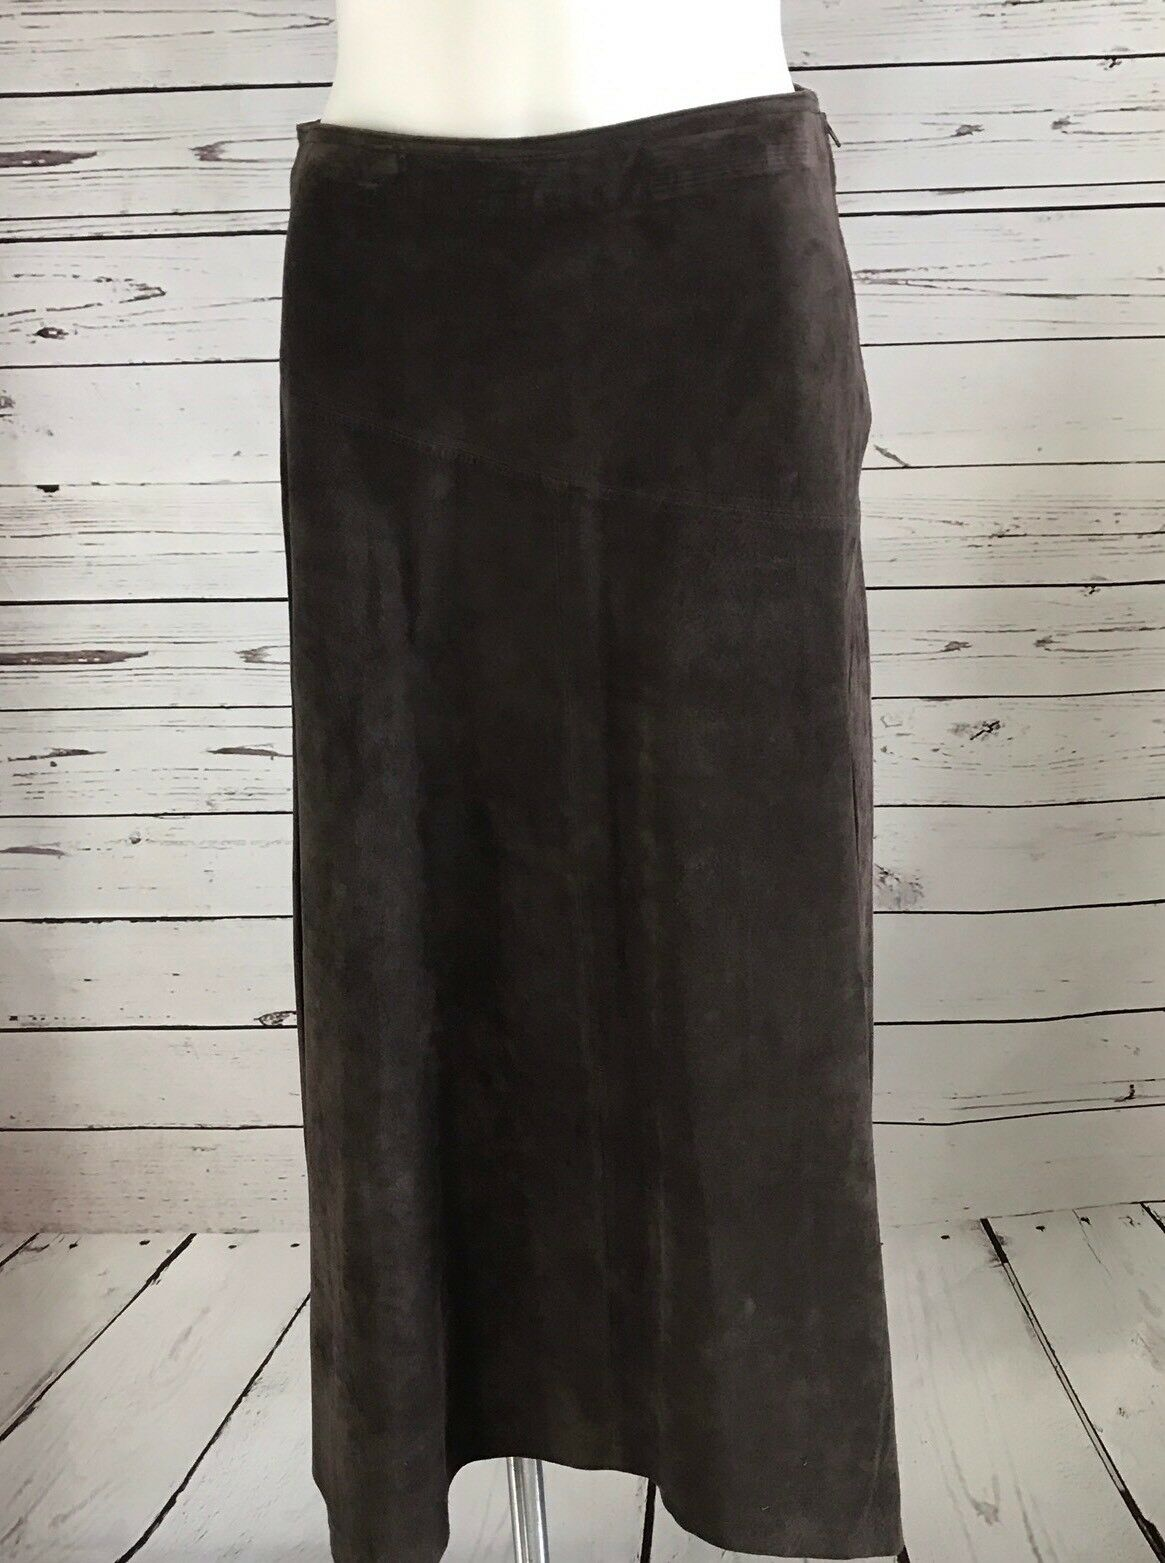 Provence d'amour Woman's Leather Skirt SIZE 8 A Line Zig Zag Hem Brown NWT  188